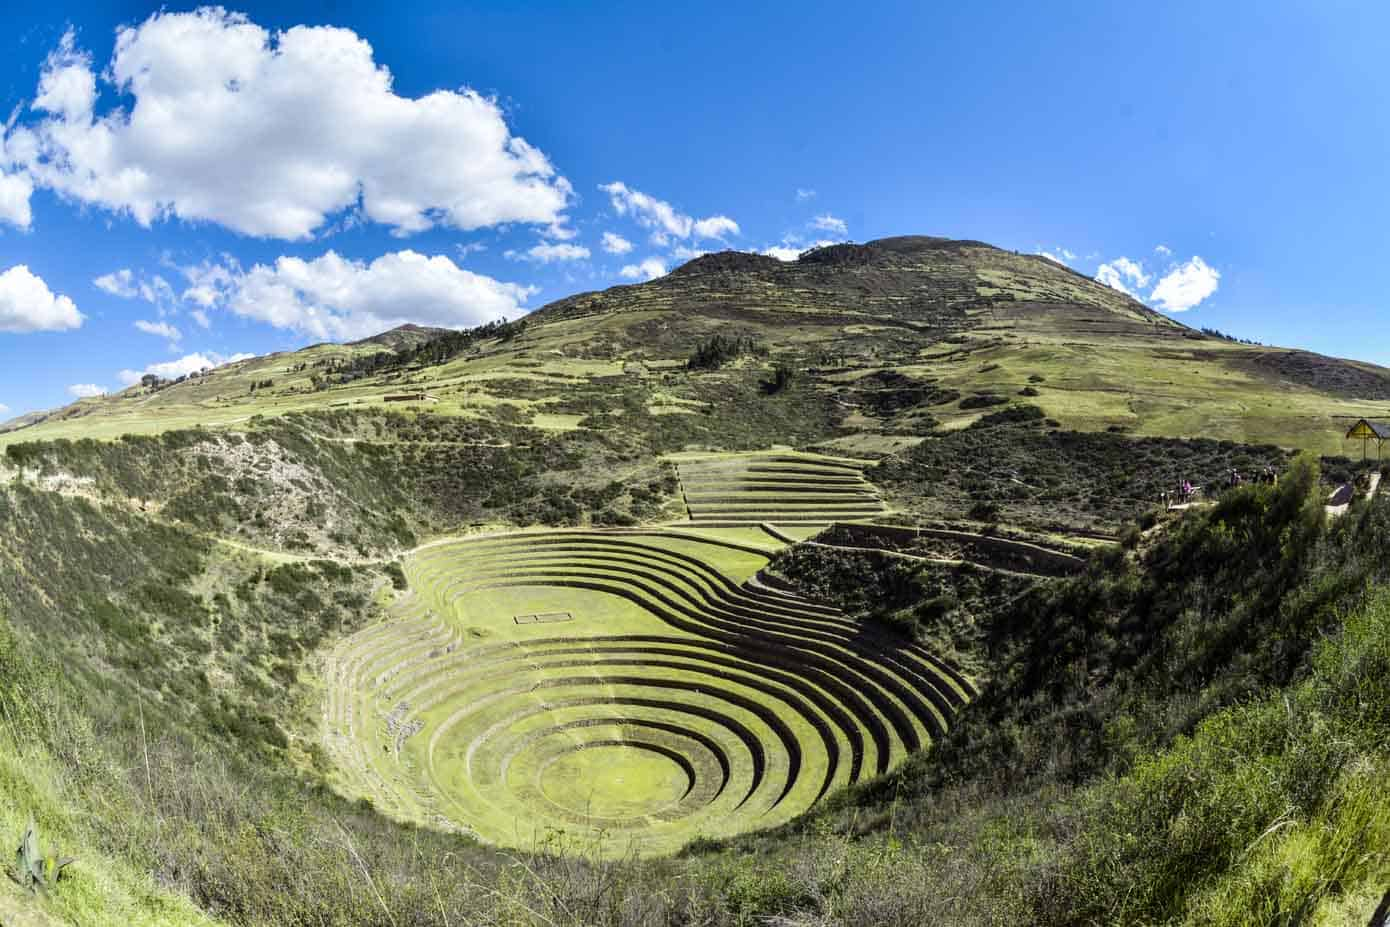 Lush valley with bright blue skies in Peru called Sacred Valley.